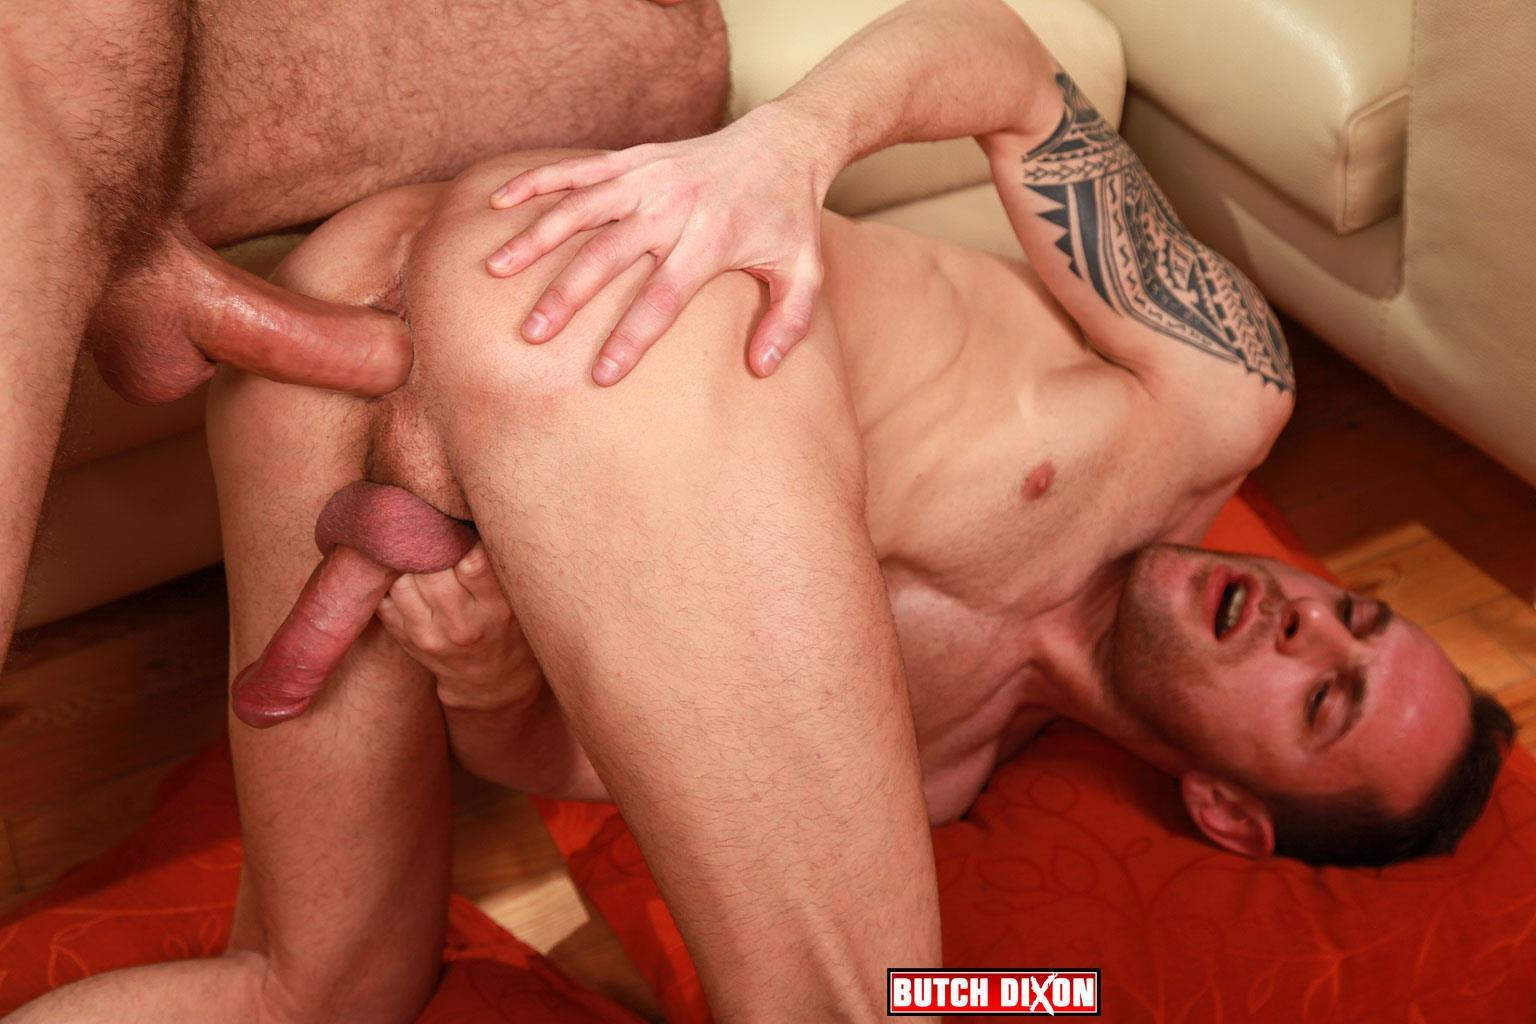 Butch Dixon Aitor Bravo and Craig Daniel Big Uncut Cock Barebacking Breeding BBBH Amateur Gay Porn 18 Craig Daniel Barebacking Aitor Bravo With His Huge Uncut Cock